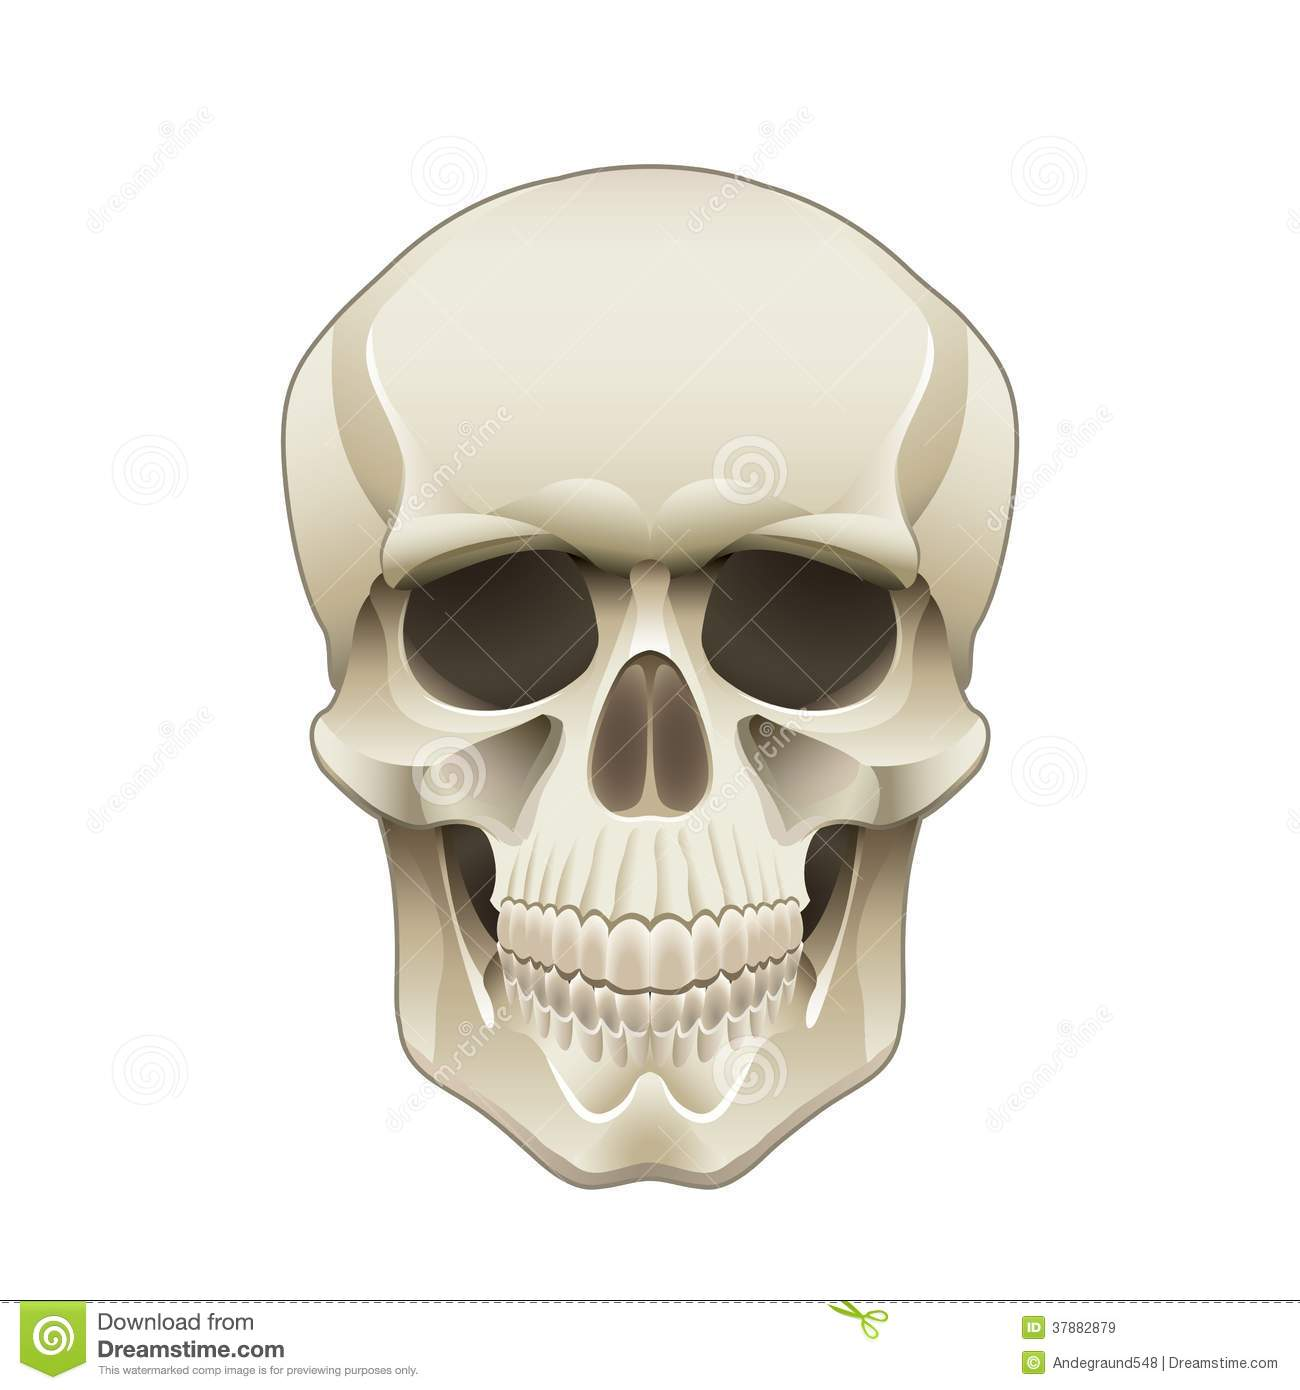 Human Skull Vector Illustration Royalty Free Stock Images ...